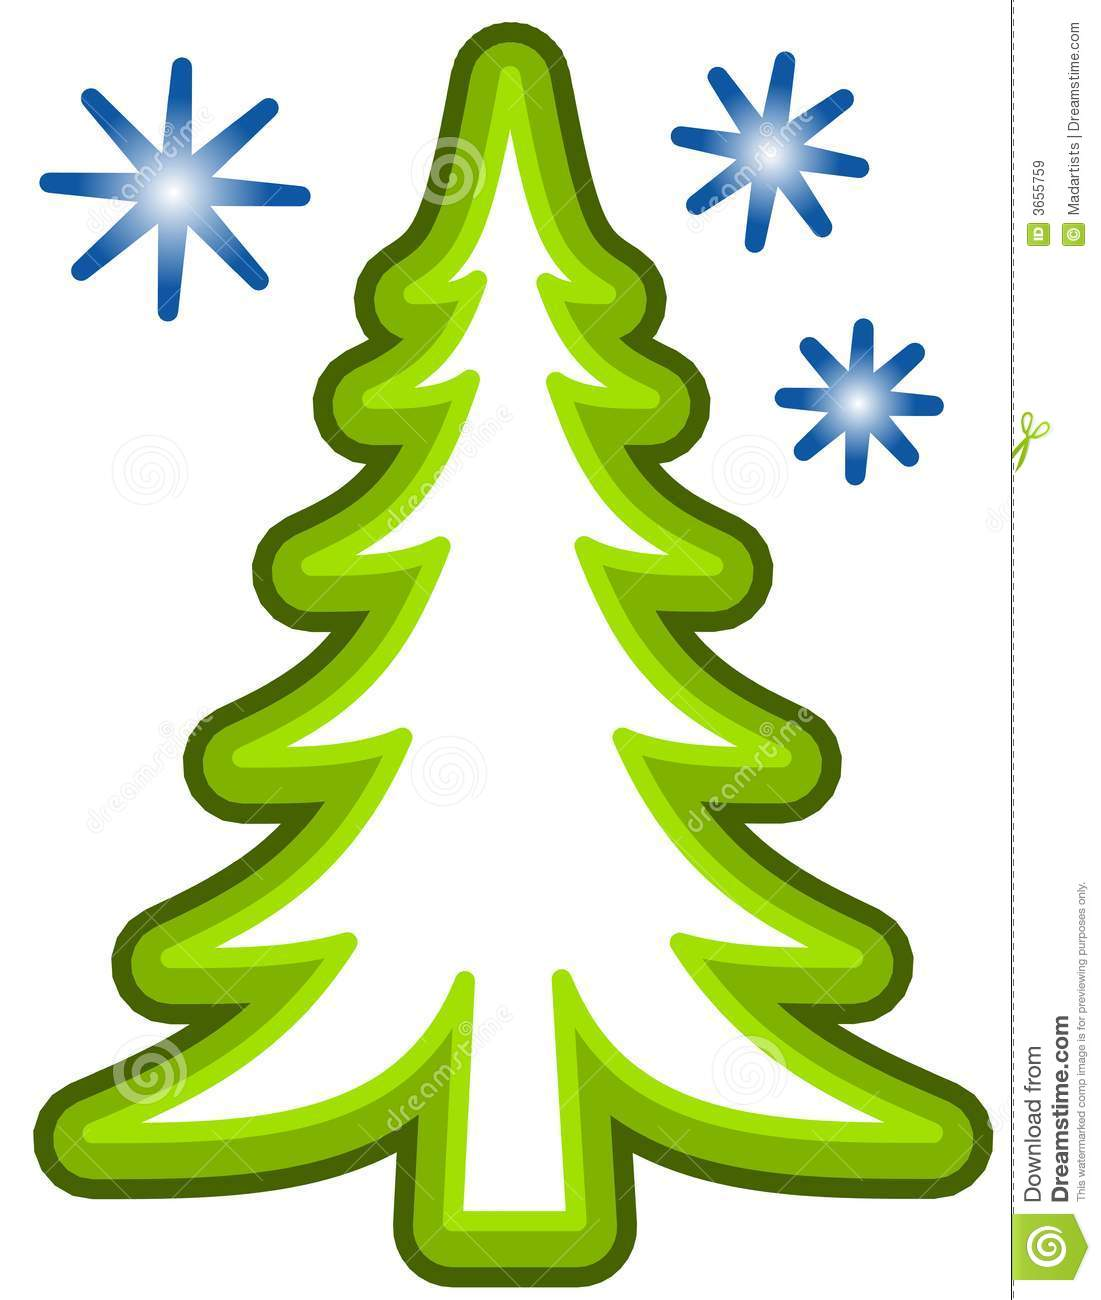 Simple Christmas Tree Clip Art Royalty Free Stock Images.